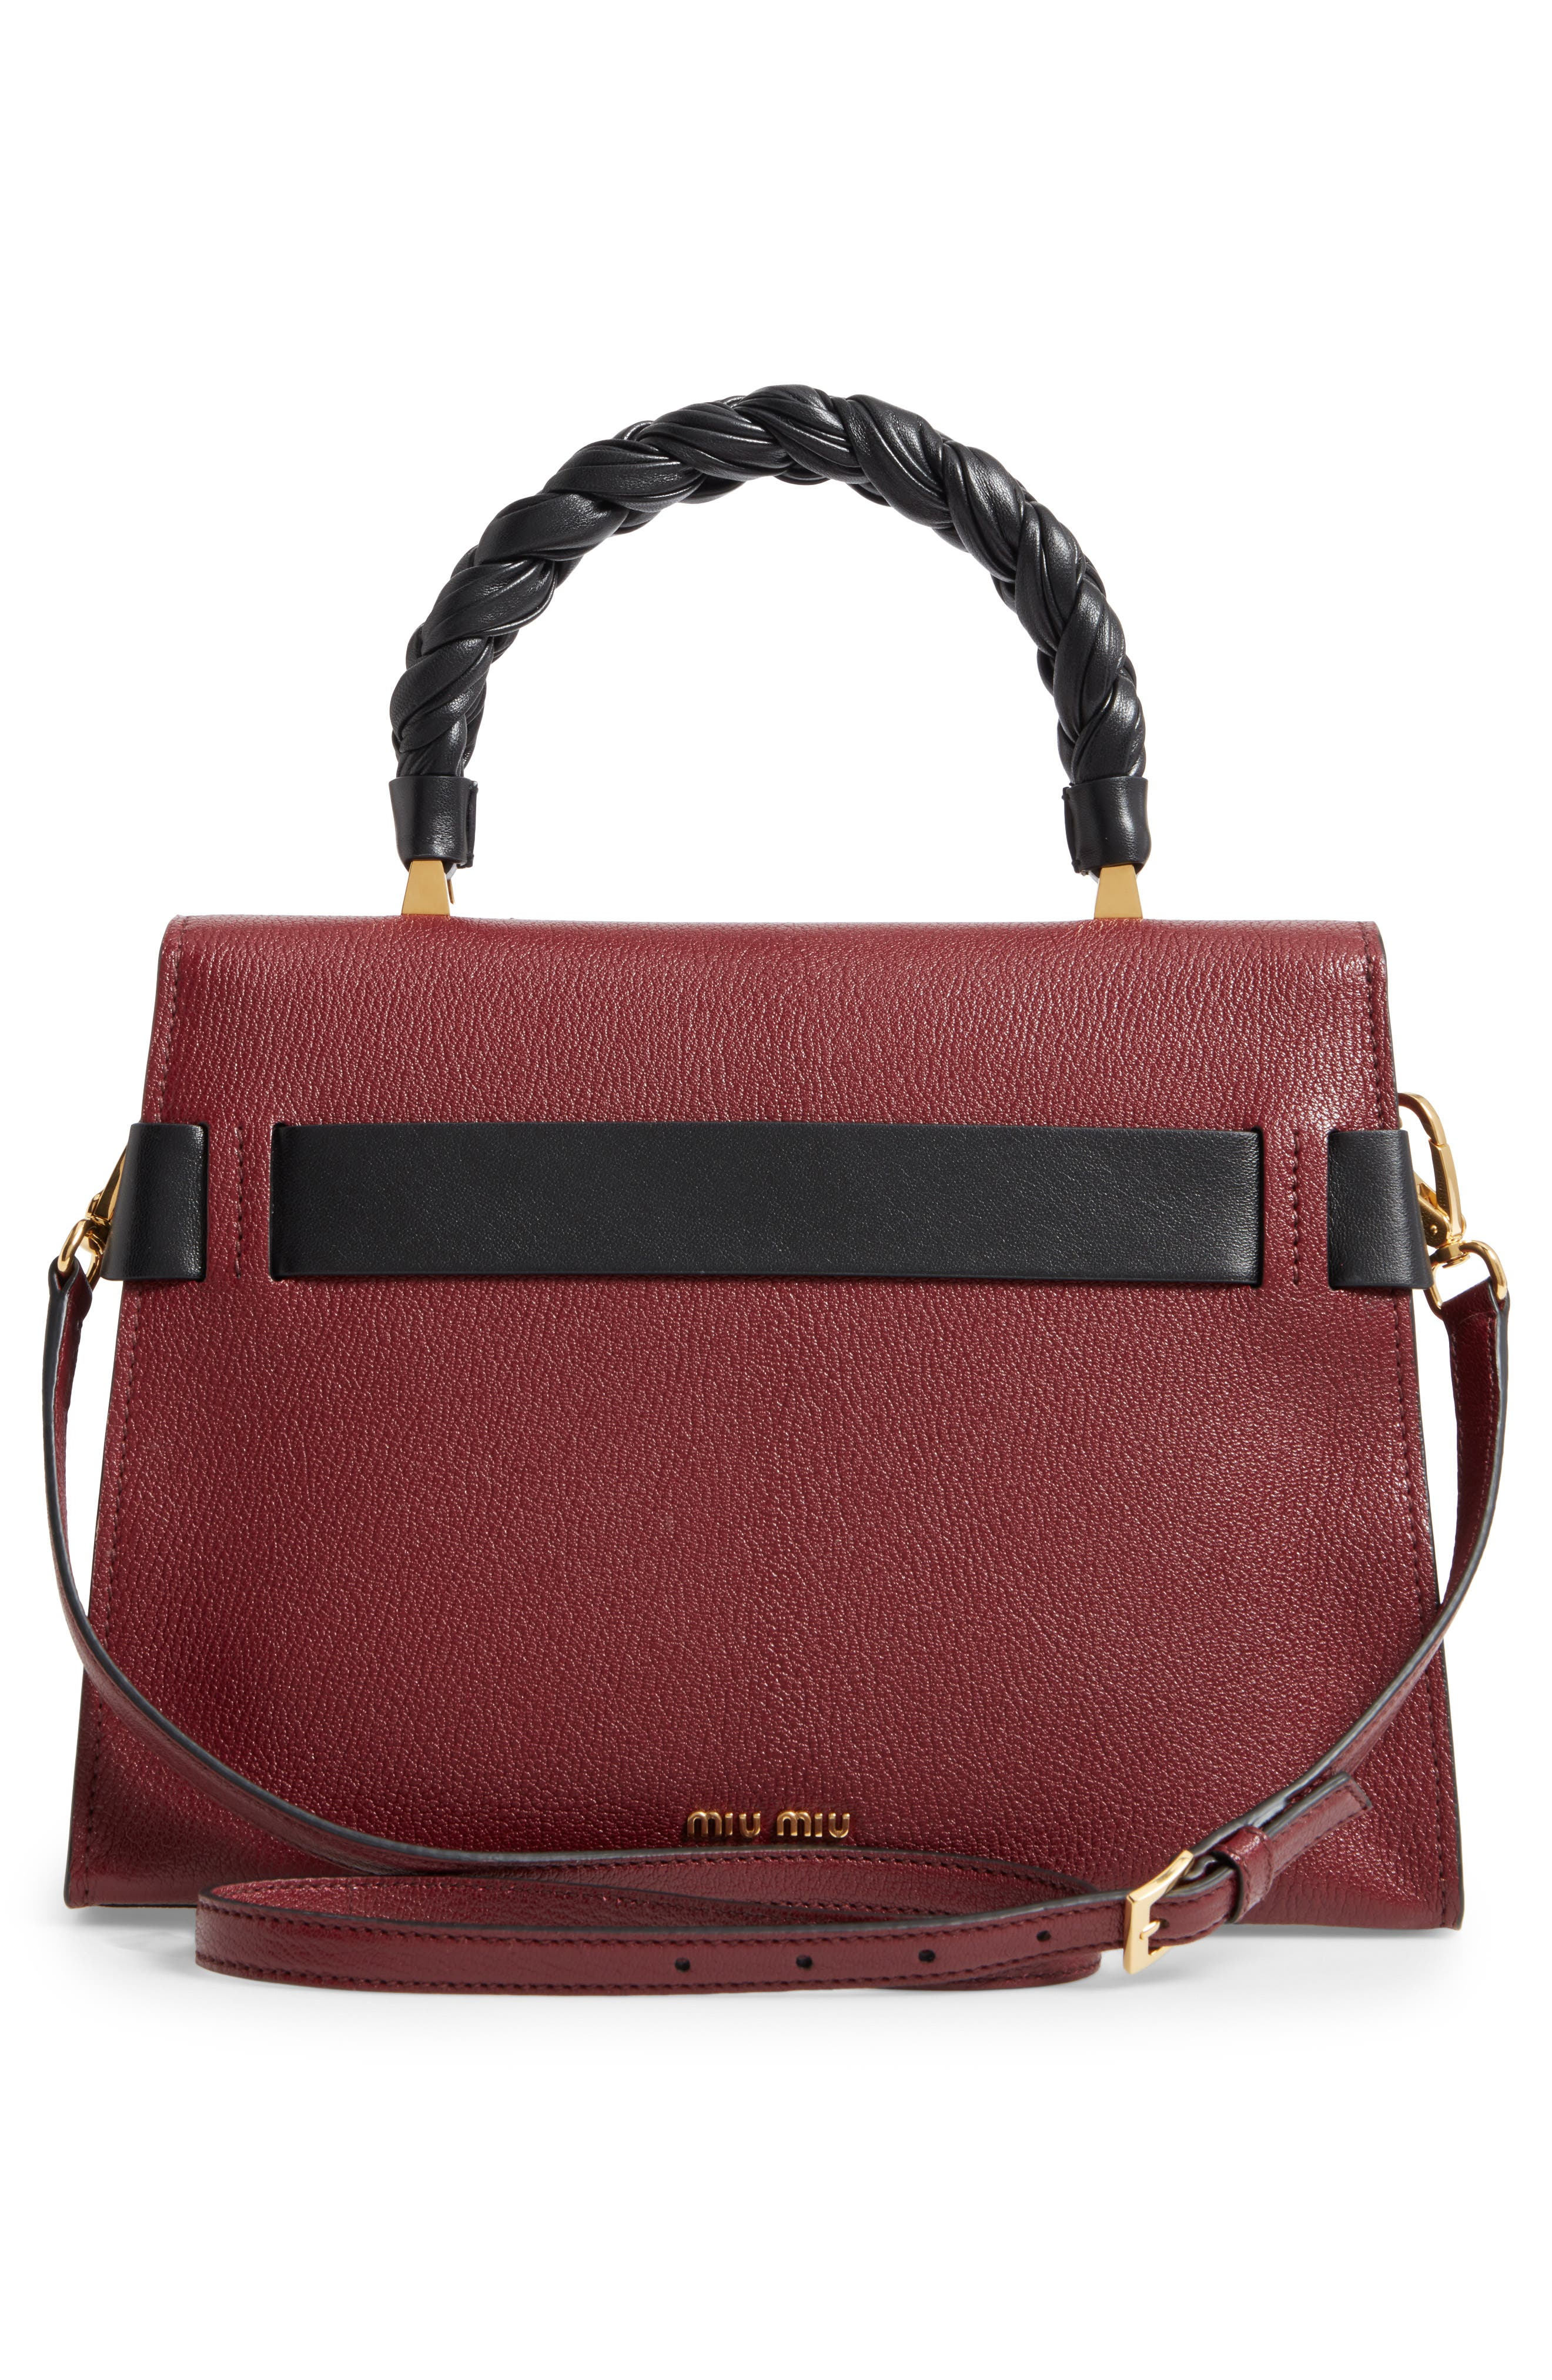 Madras Click Goatskin Leather Satchel,                             Alternate thumbnail 3, color,                             930